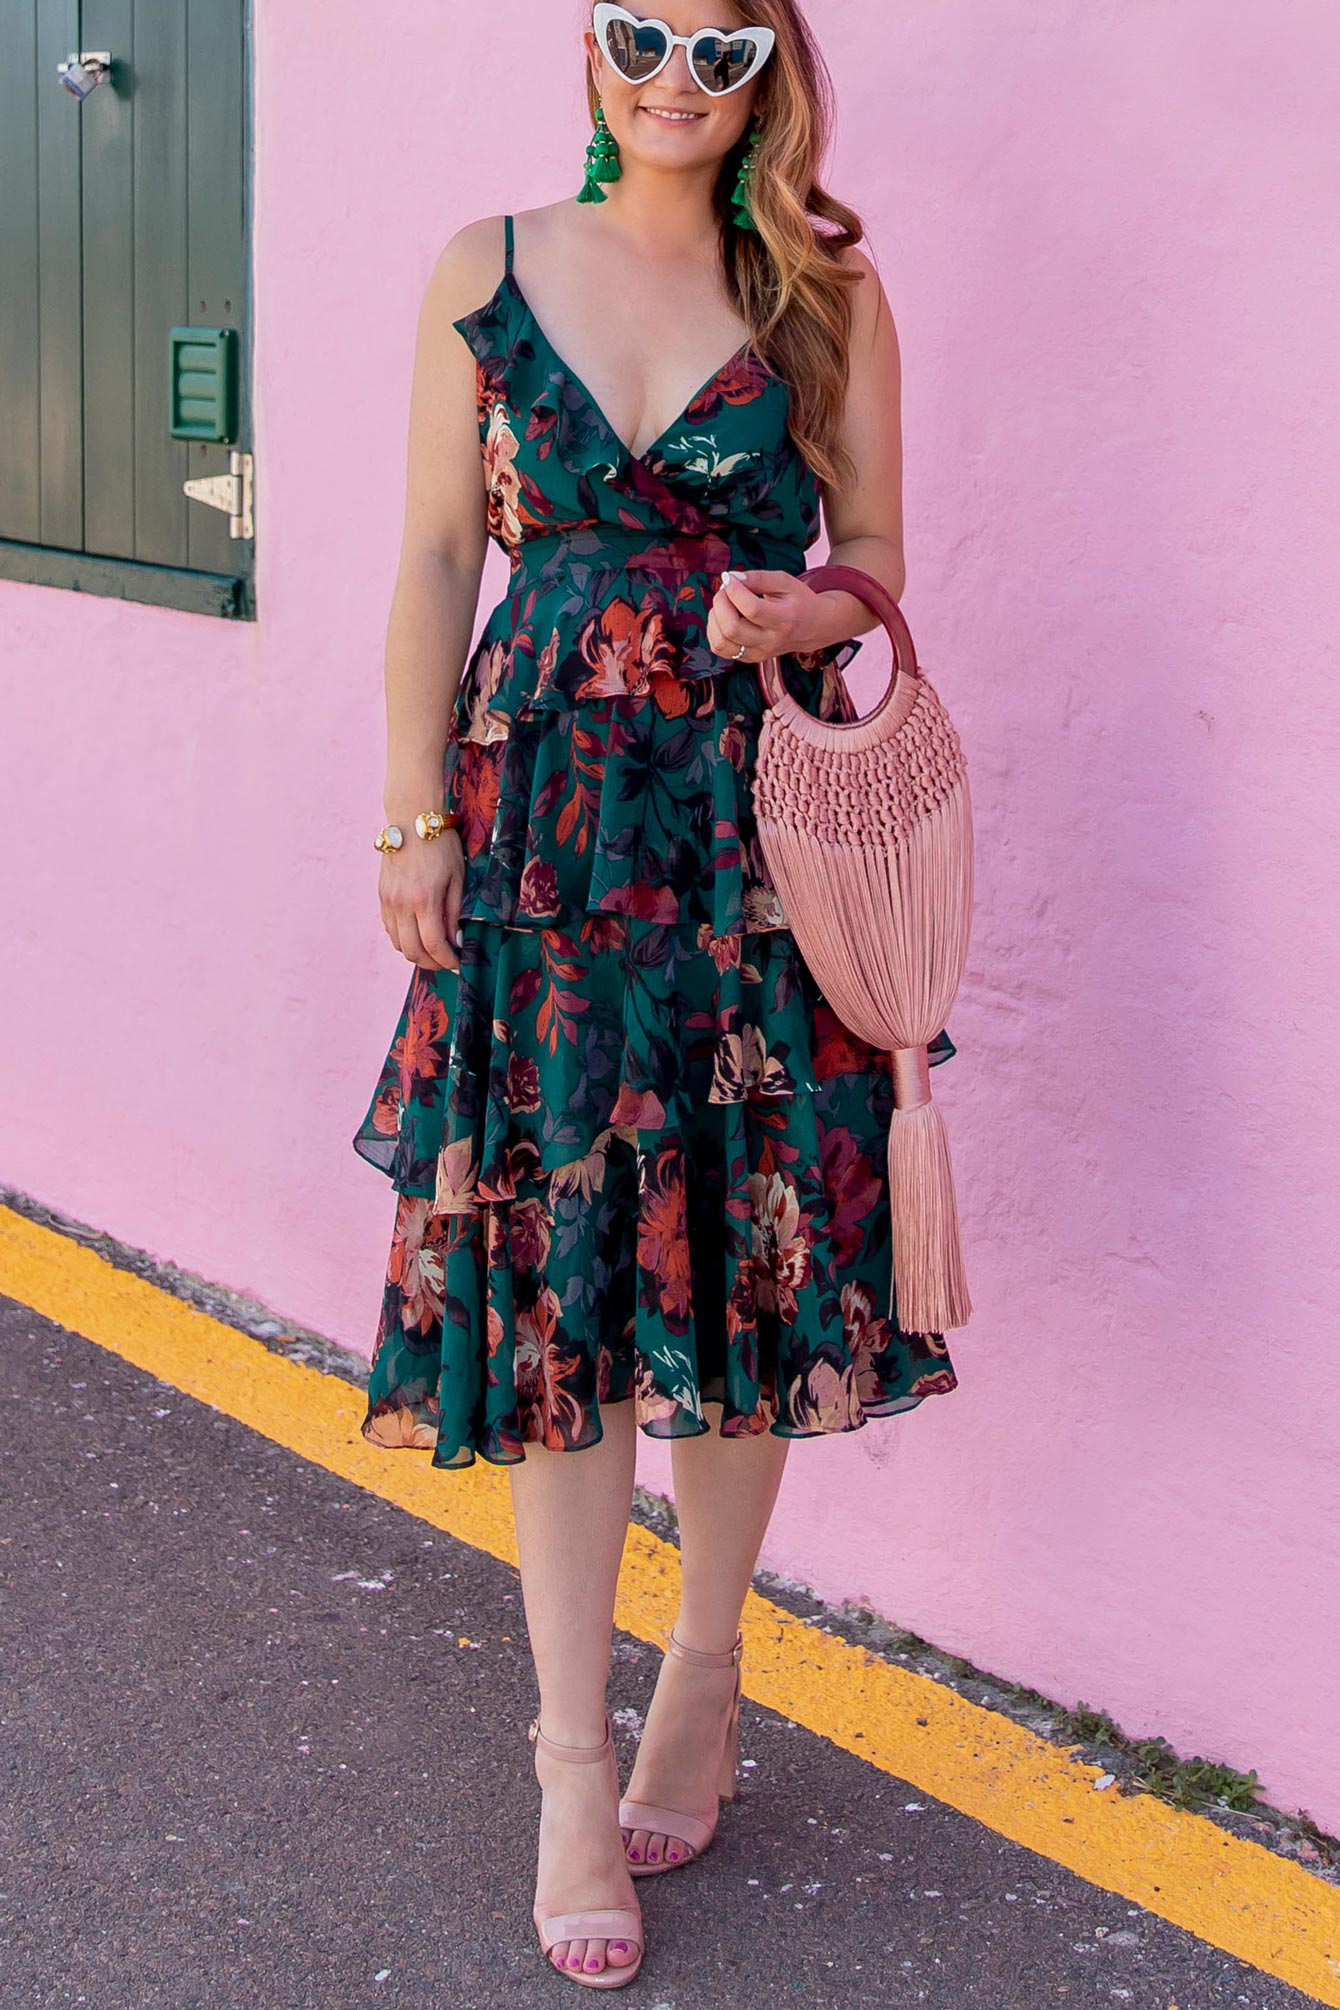 Ali Jay Nordstrom Floral Dress